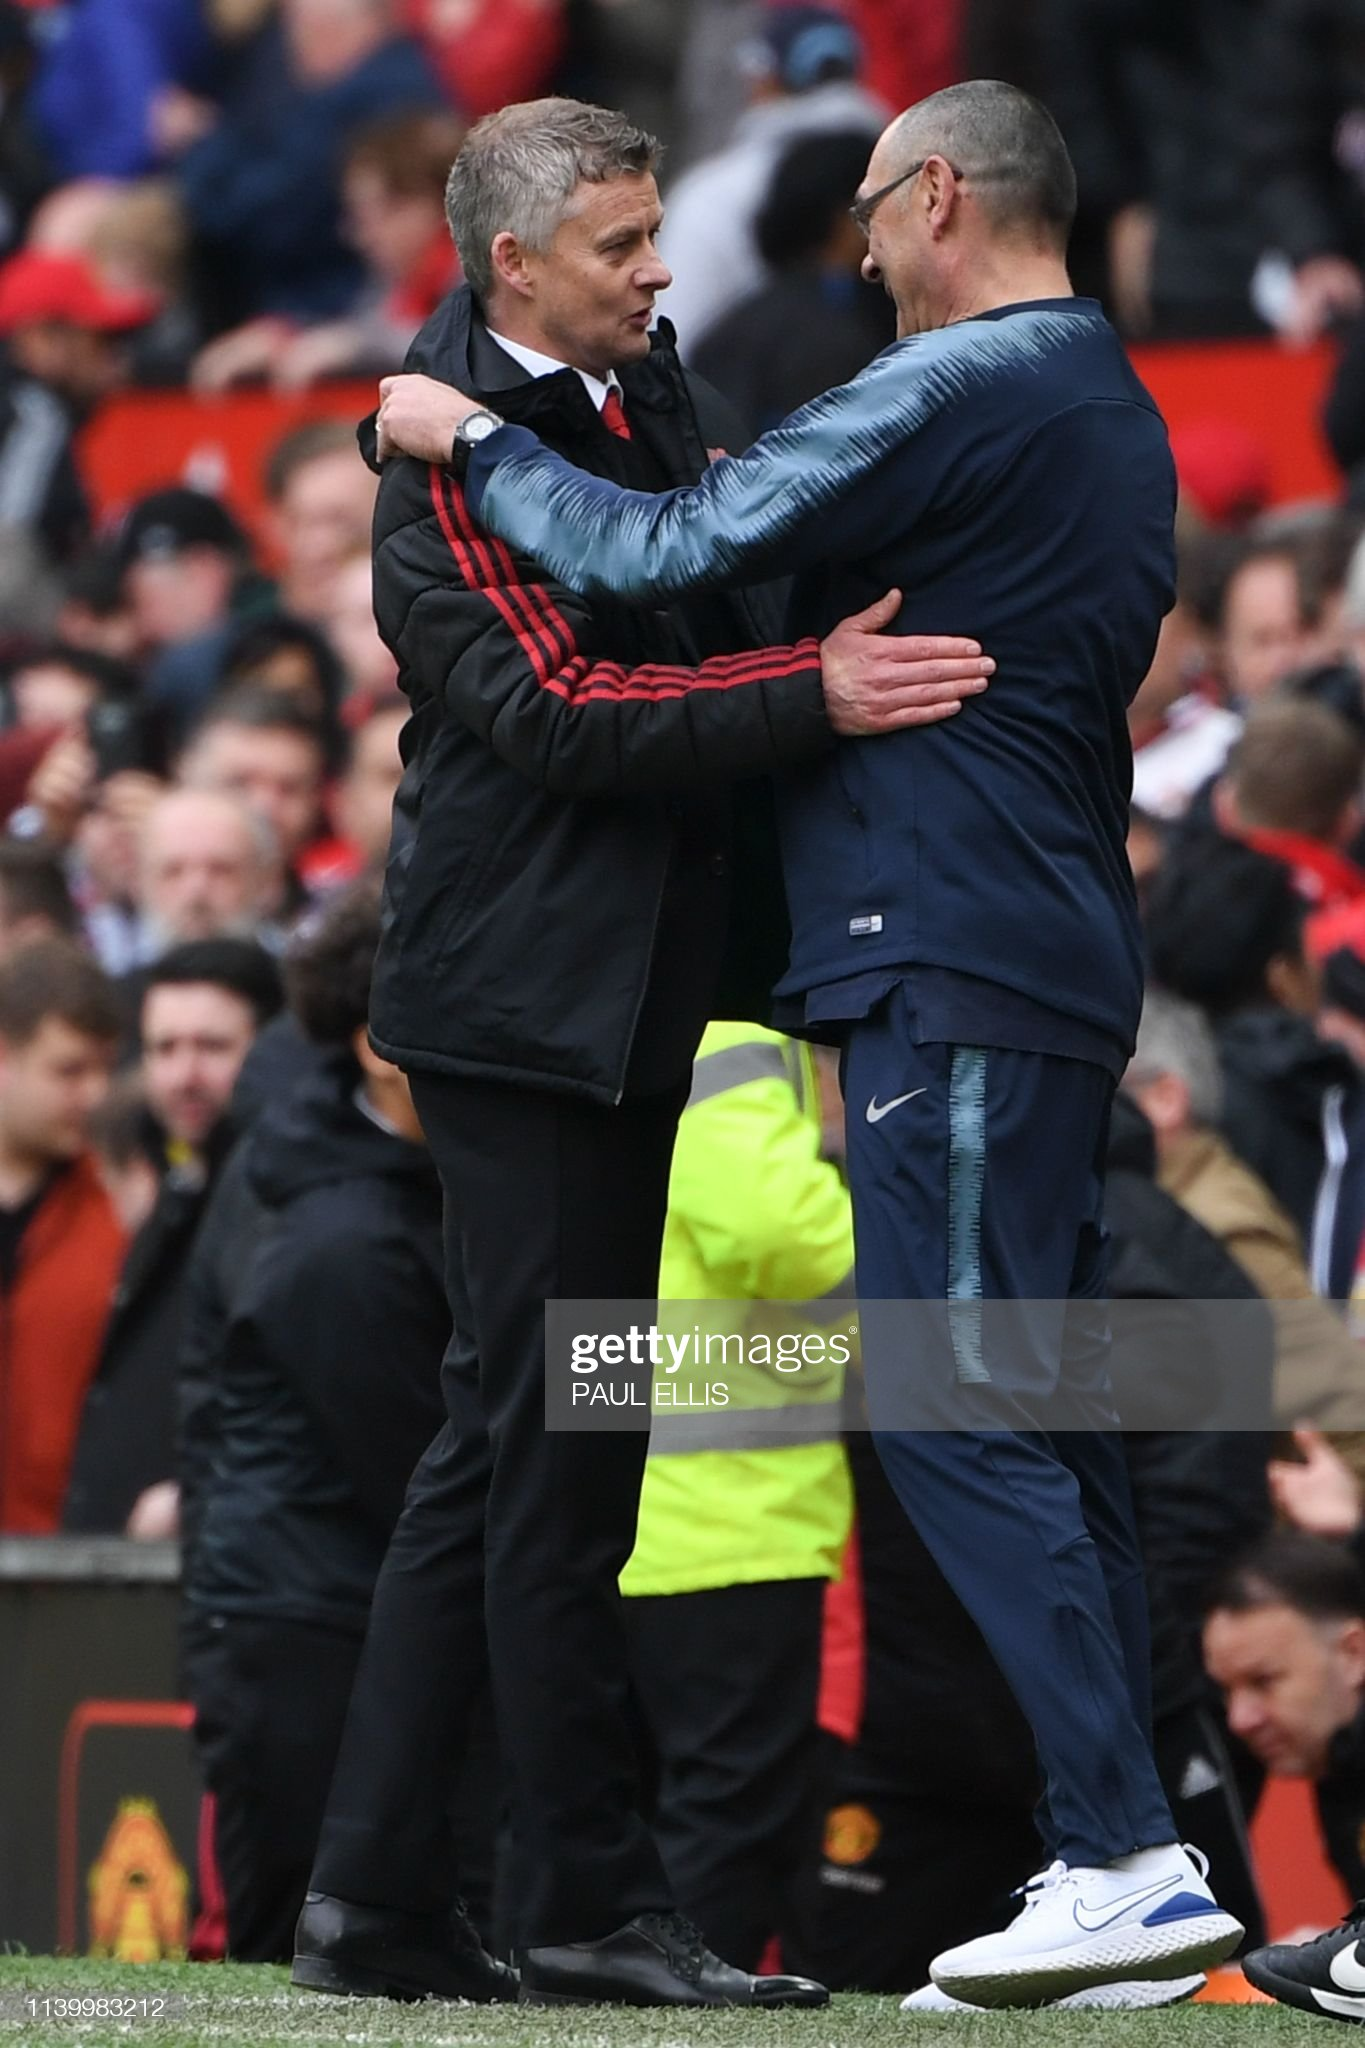 ¿Cuánto mide Maurizio Sarri? - Altura - Real height Manchester-uniteds-norwegian-manager-ole-gunnar-solskjaer-embraces-picture-id1139983212?s=2048x2048